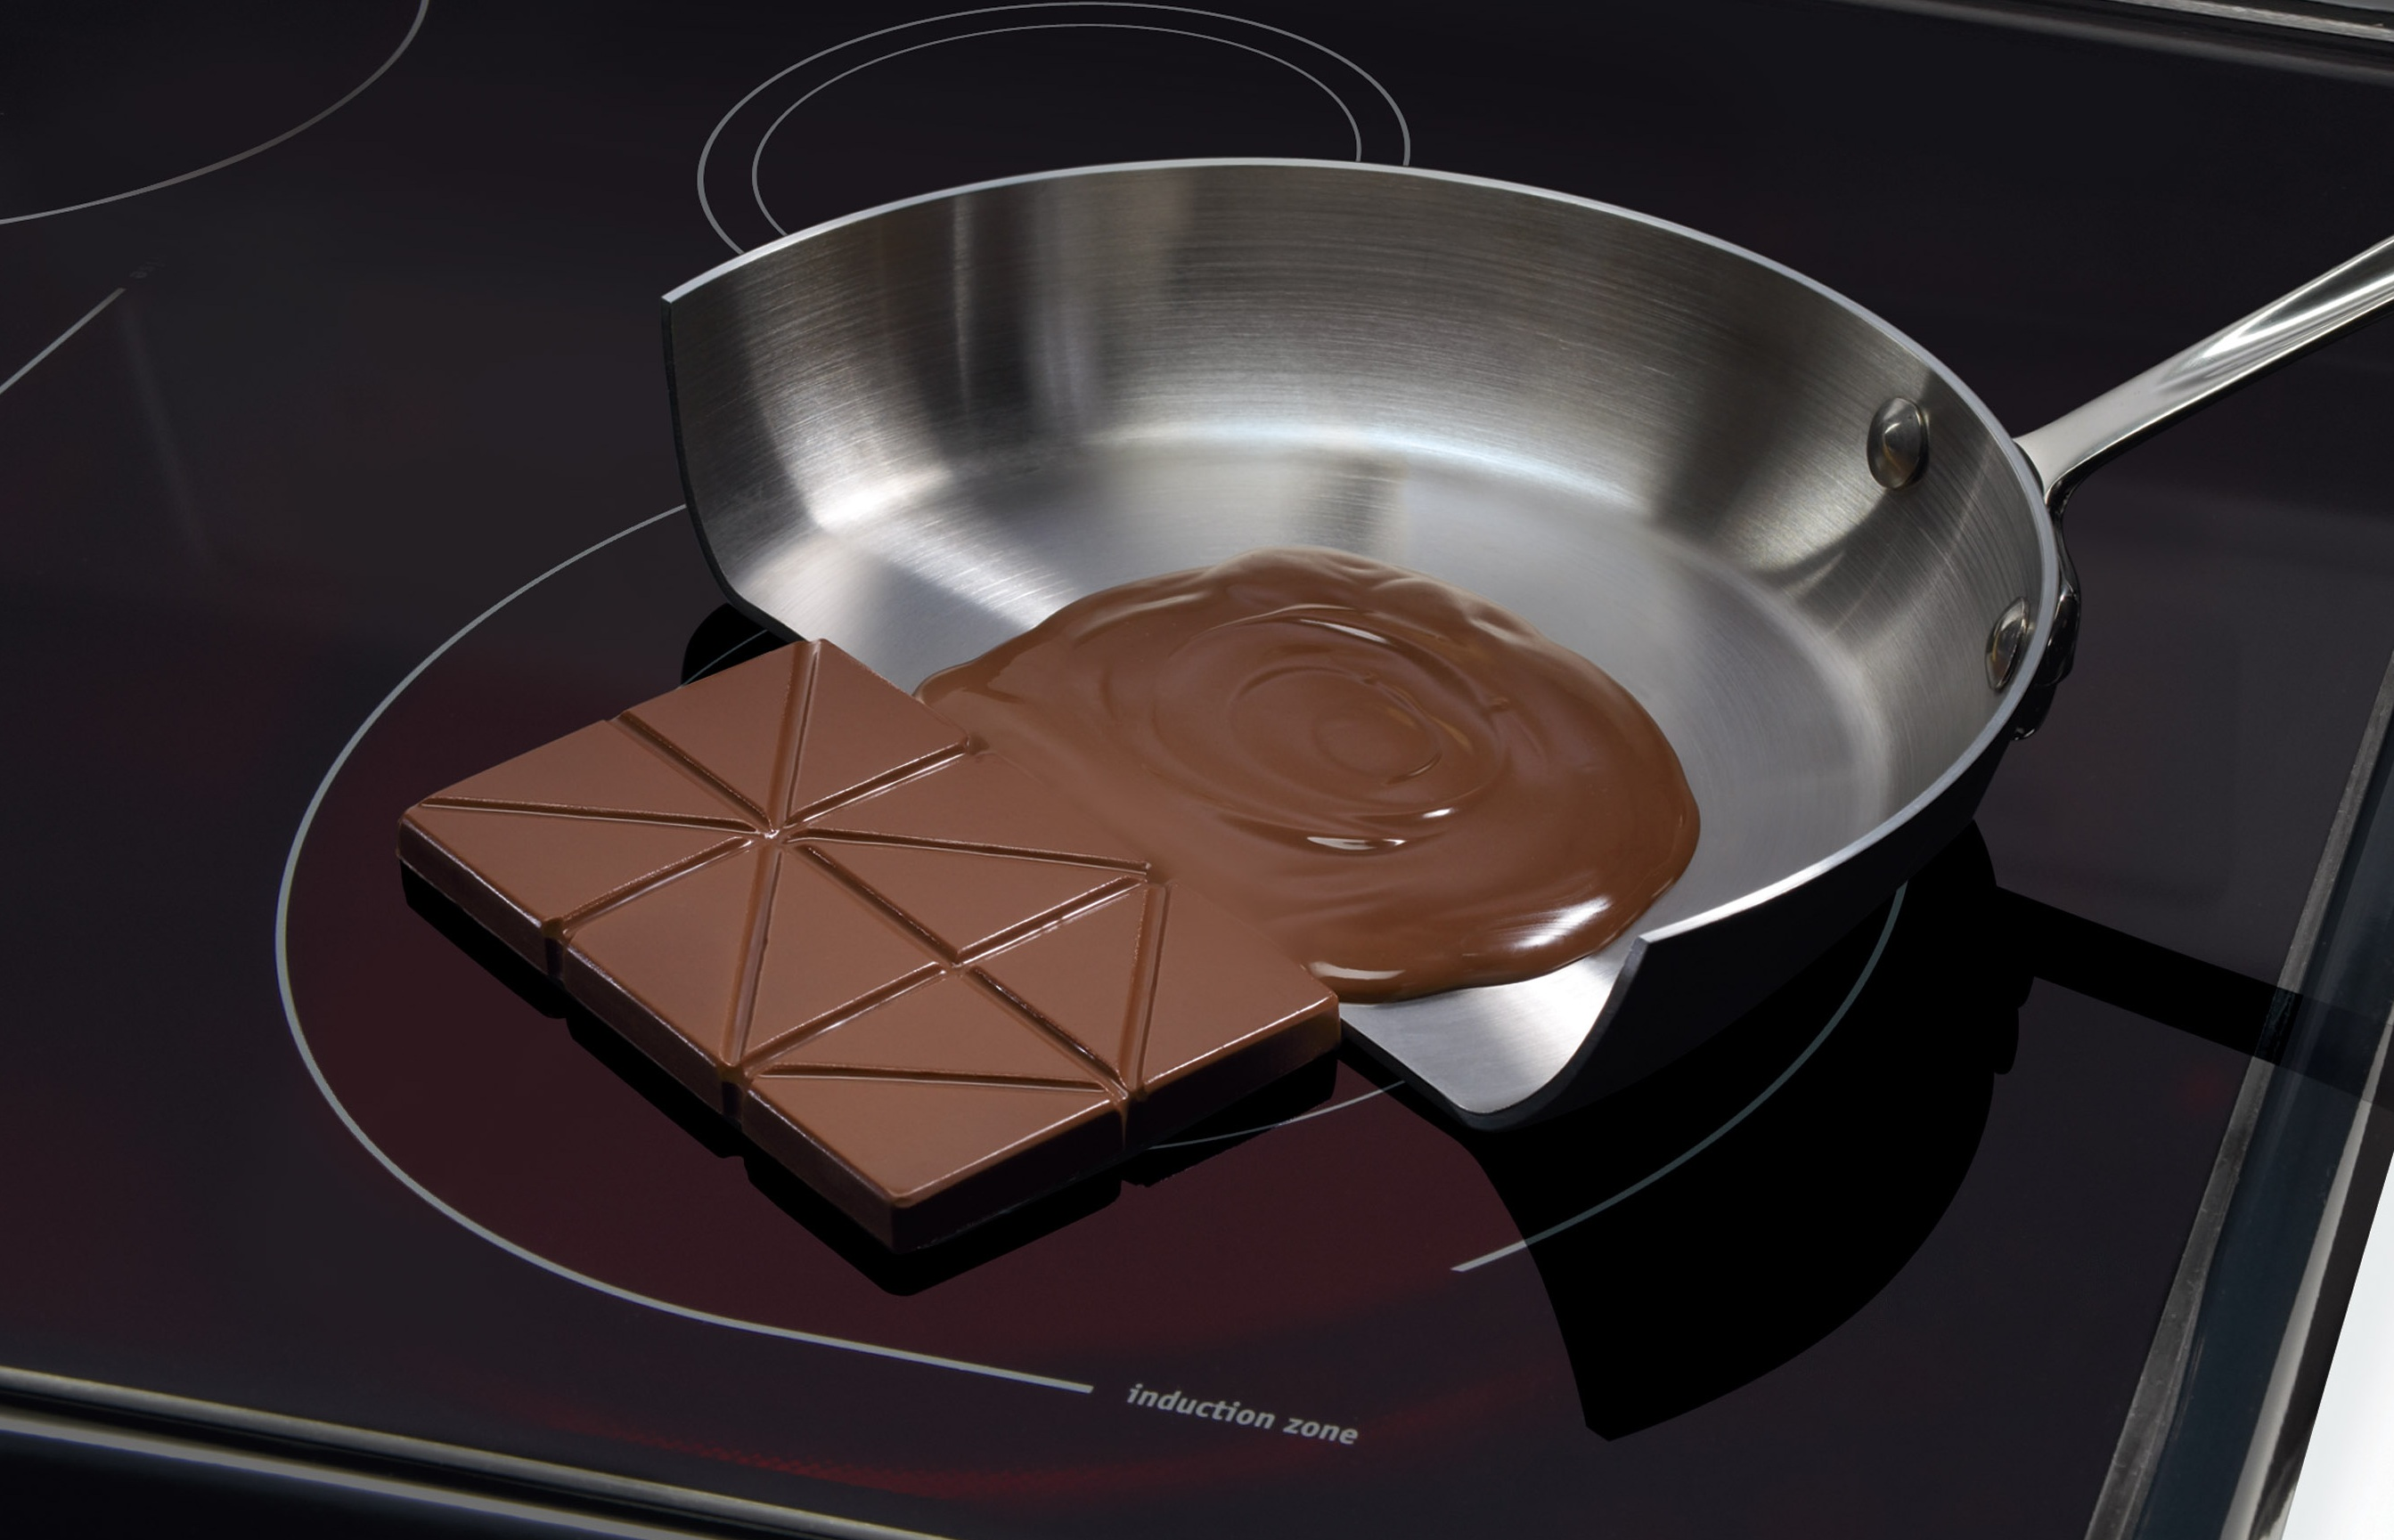 Choosing The Perfect Pans To Use With An Induction